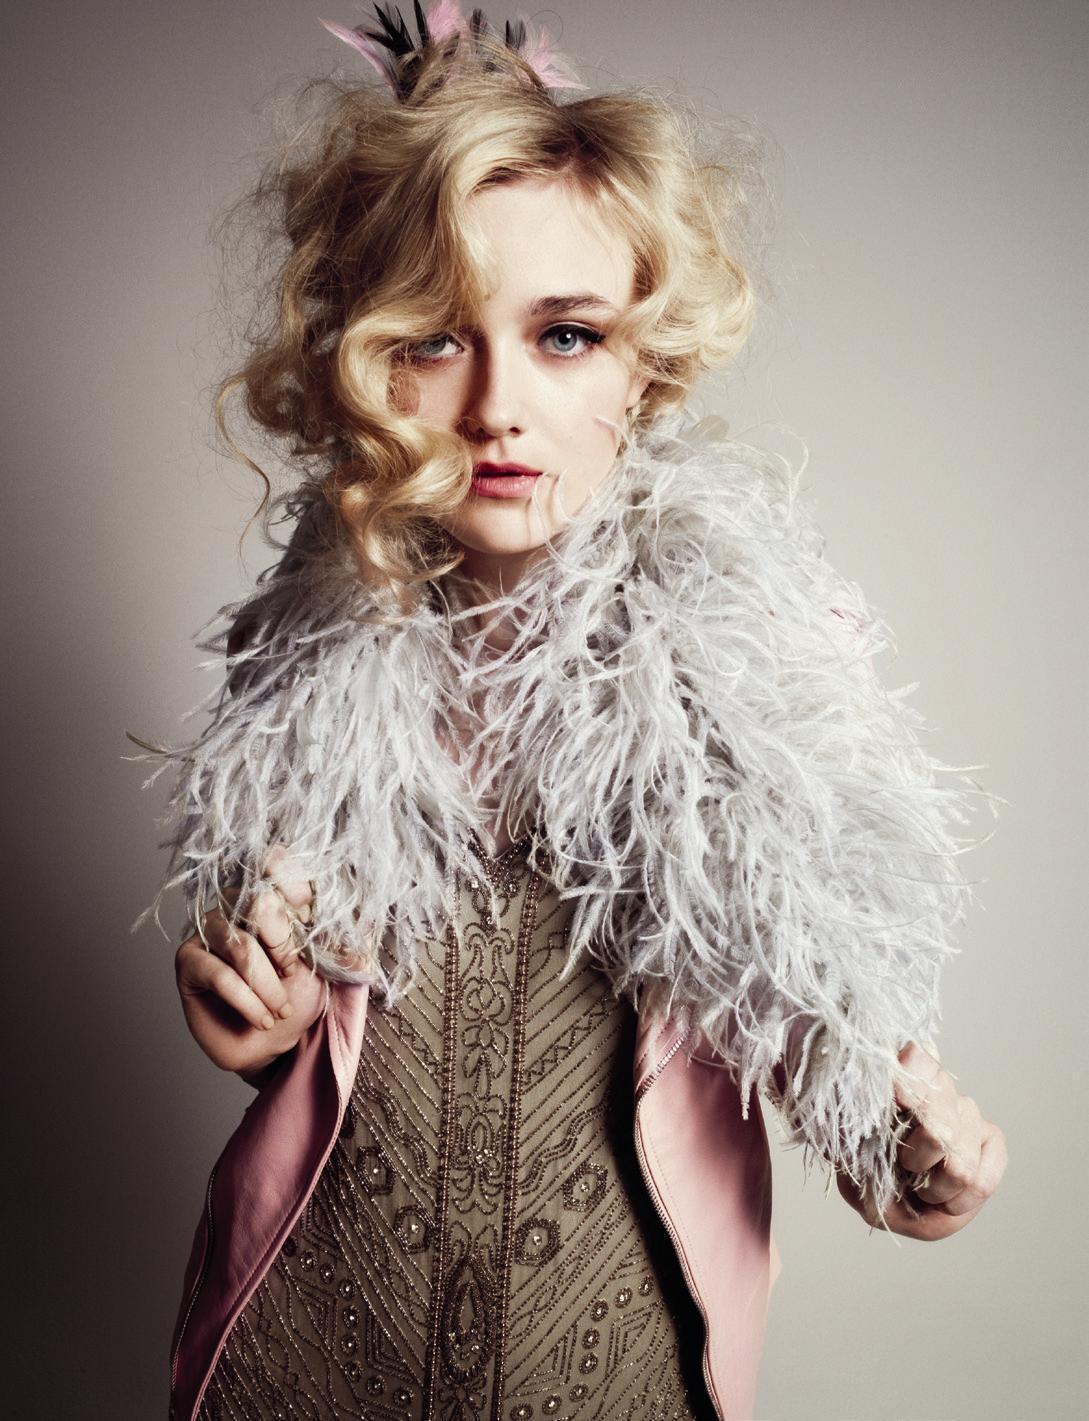 Dakota Fanning photographed by Cedric Buchet for Wonderland Magazine, 2012